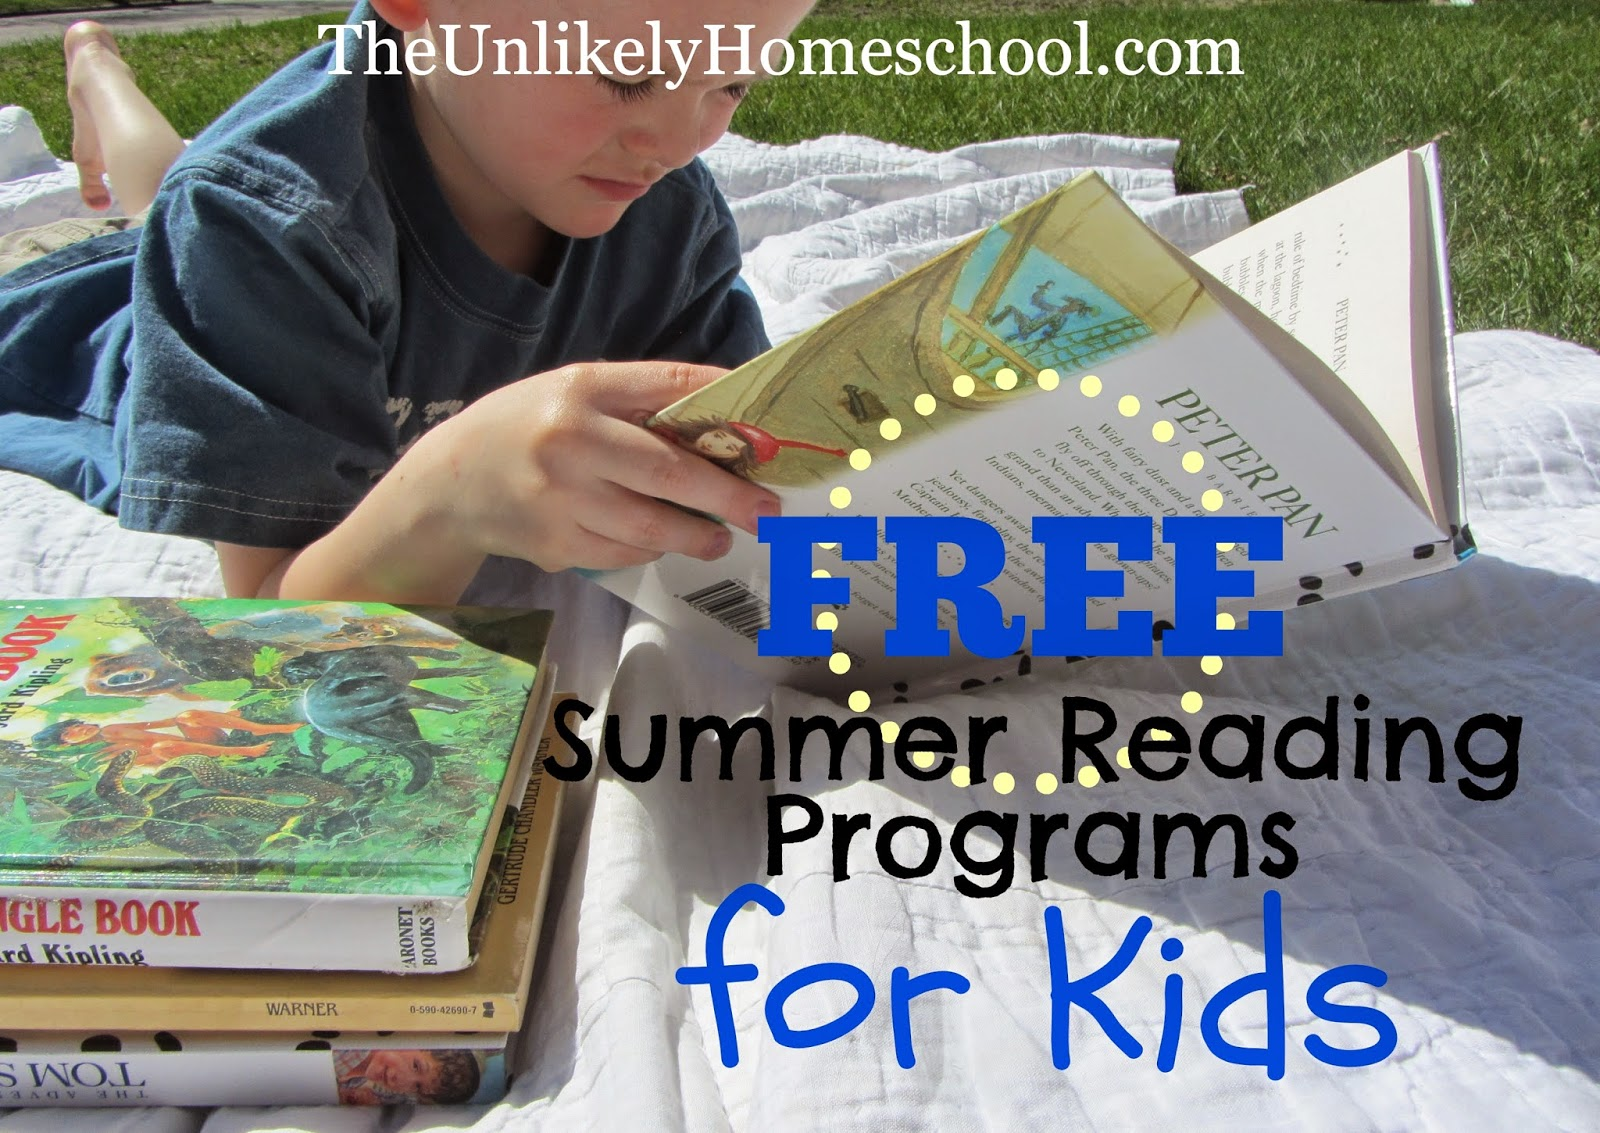 FREE Summer Reading Programs for Kids-The Unlikely Homeschool